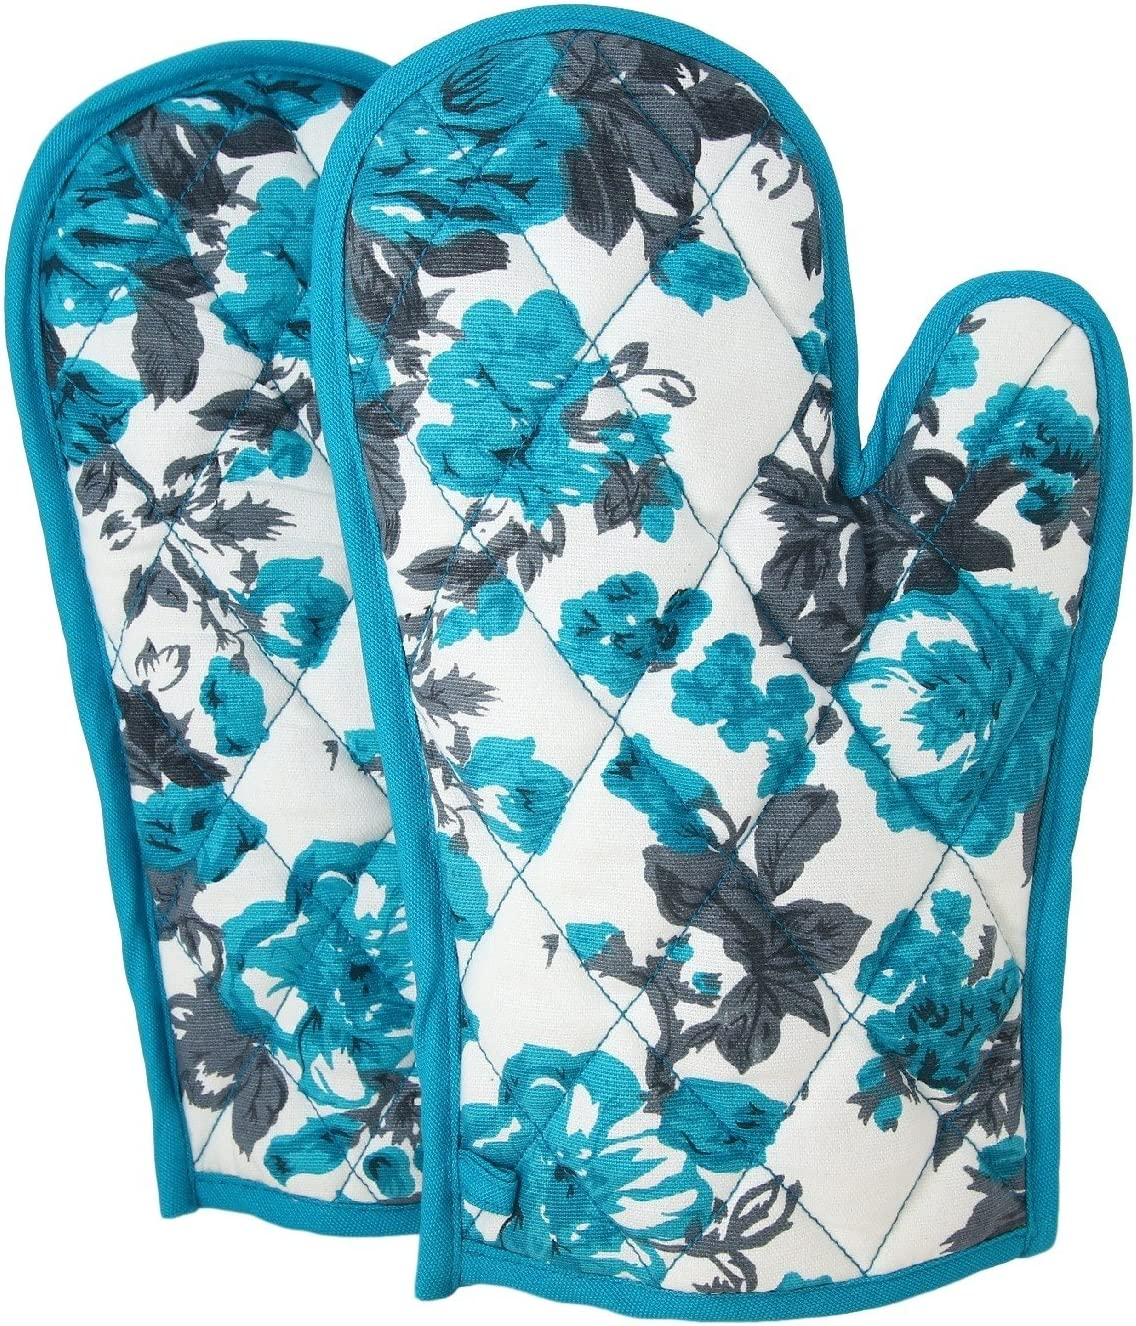 Shalinindia Cotton Oven Mitts and Pot Holders OG02-2711 Aqua Quilted Cotton Oven Gloves 8 x 12 Inch Cooking Gloves Oven